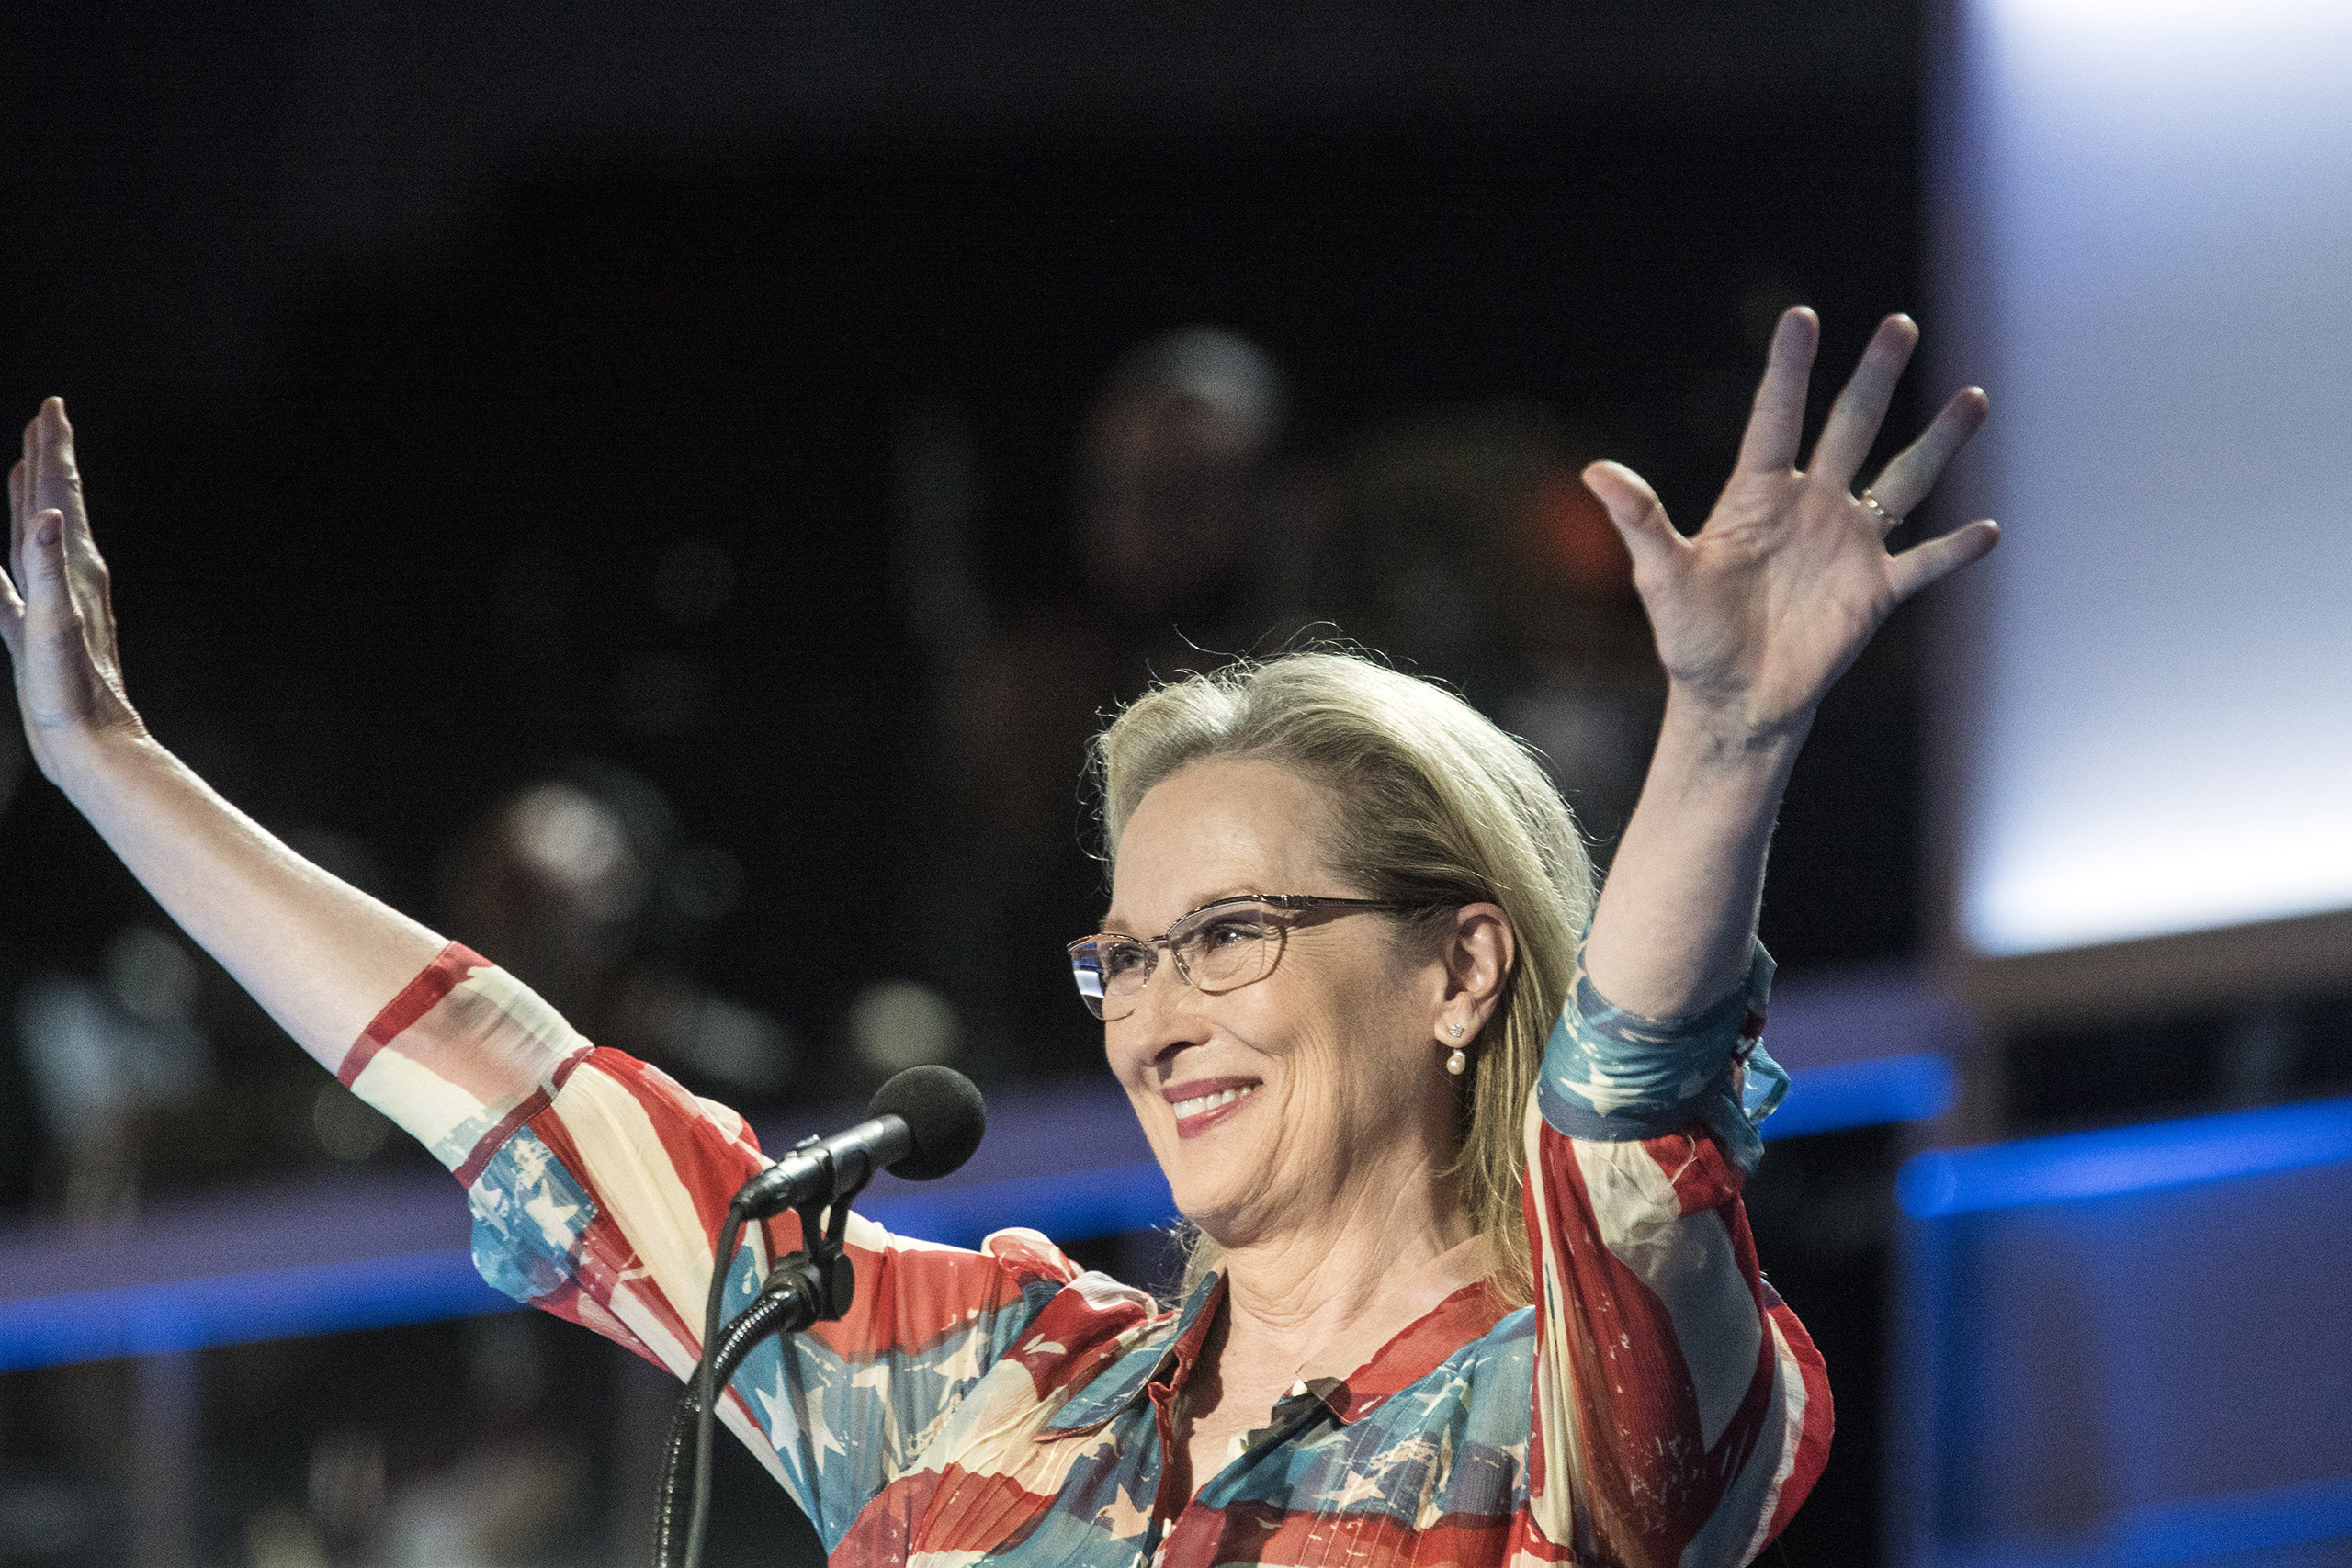 Actress Meryl Streep  delivers remarks on the second day of the Democratic National Convention at the Wells Fargo Center in Philadelphia on July 26, 2016.